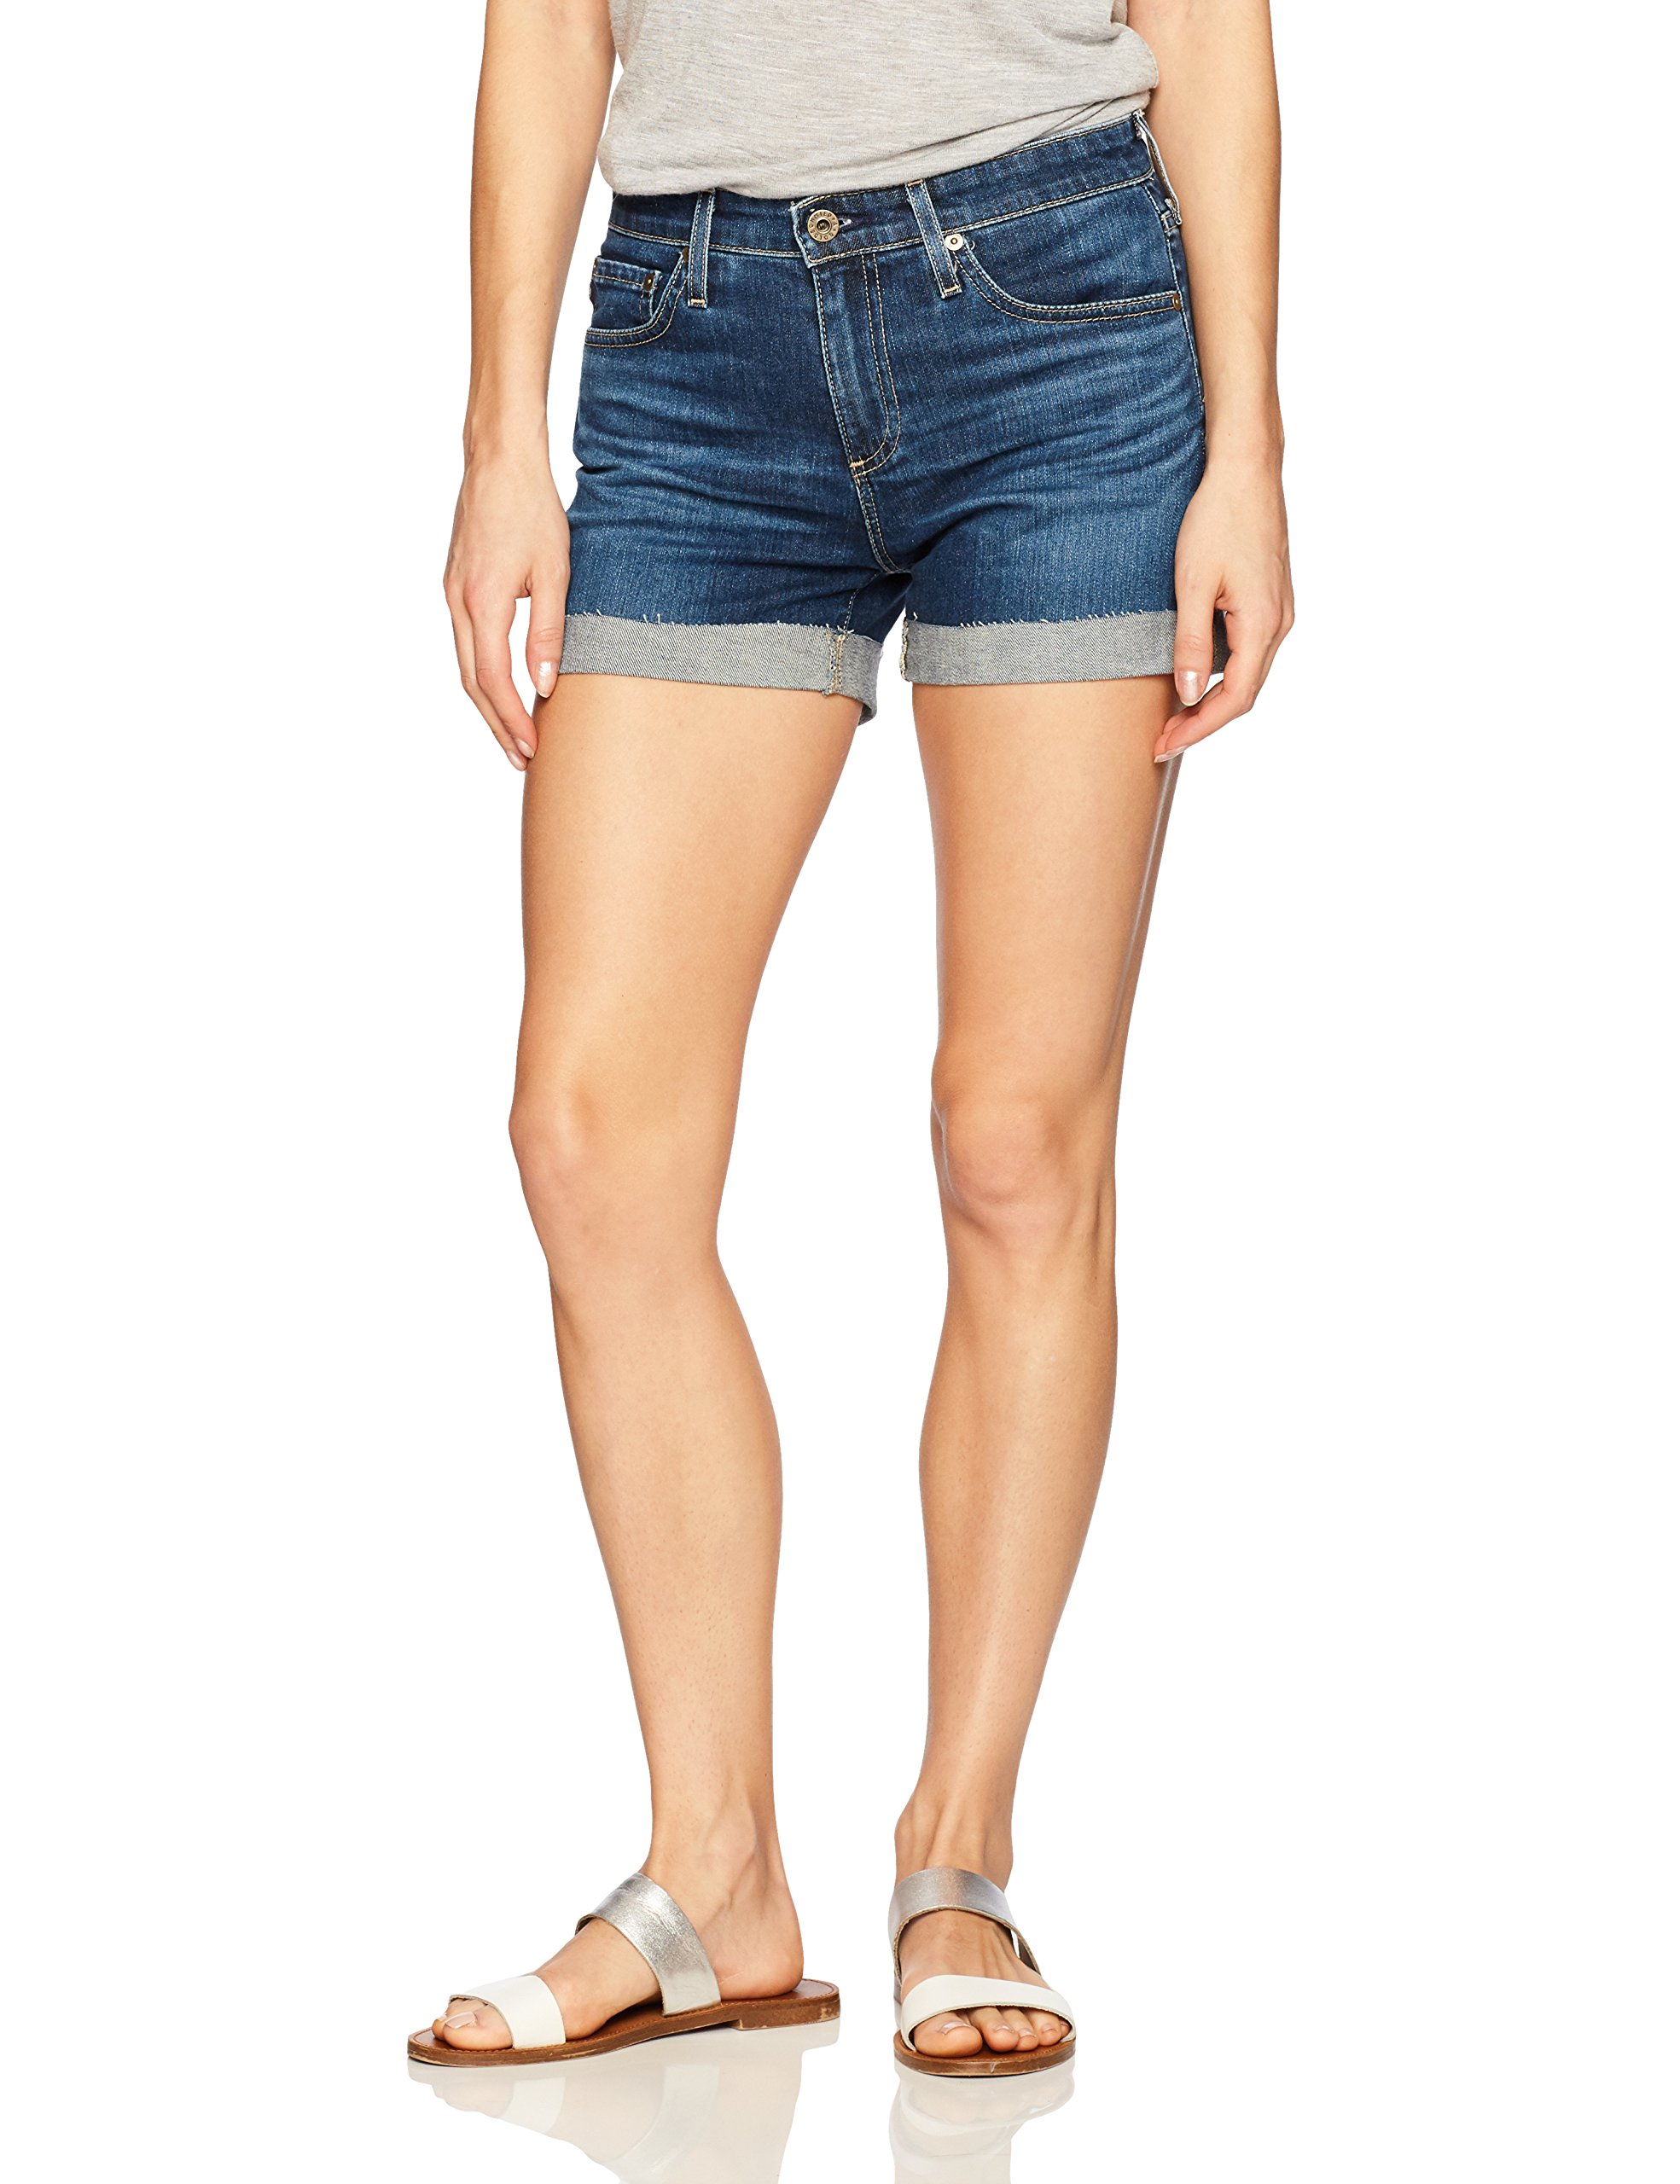 AG Adriano Goldschmied Women's The Hailey Jean Short, Masquerade, 32